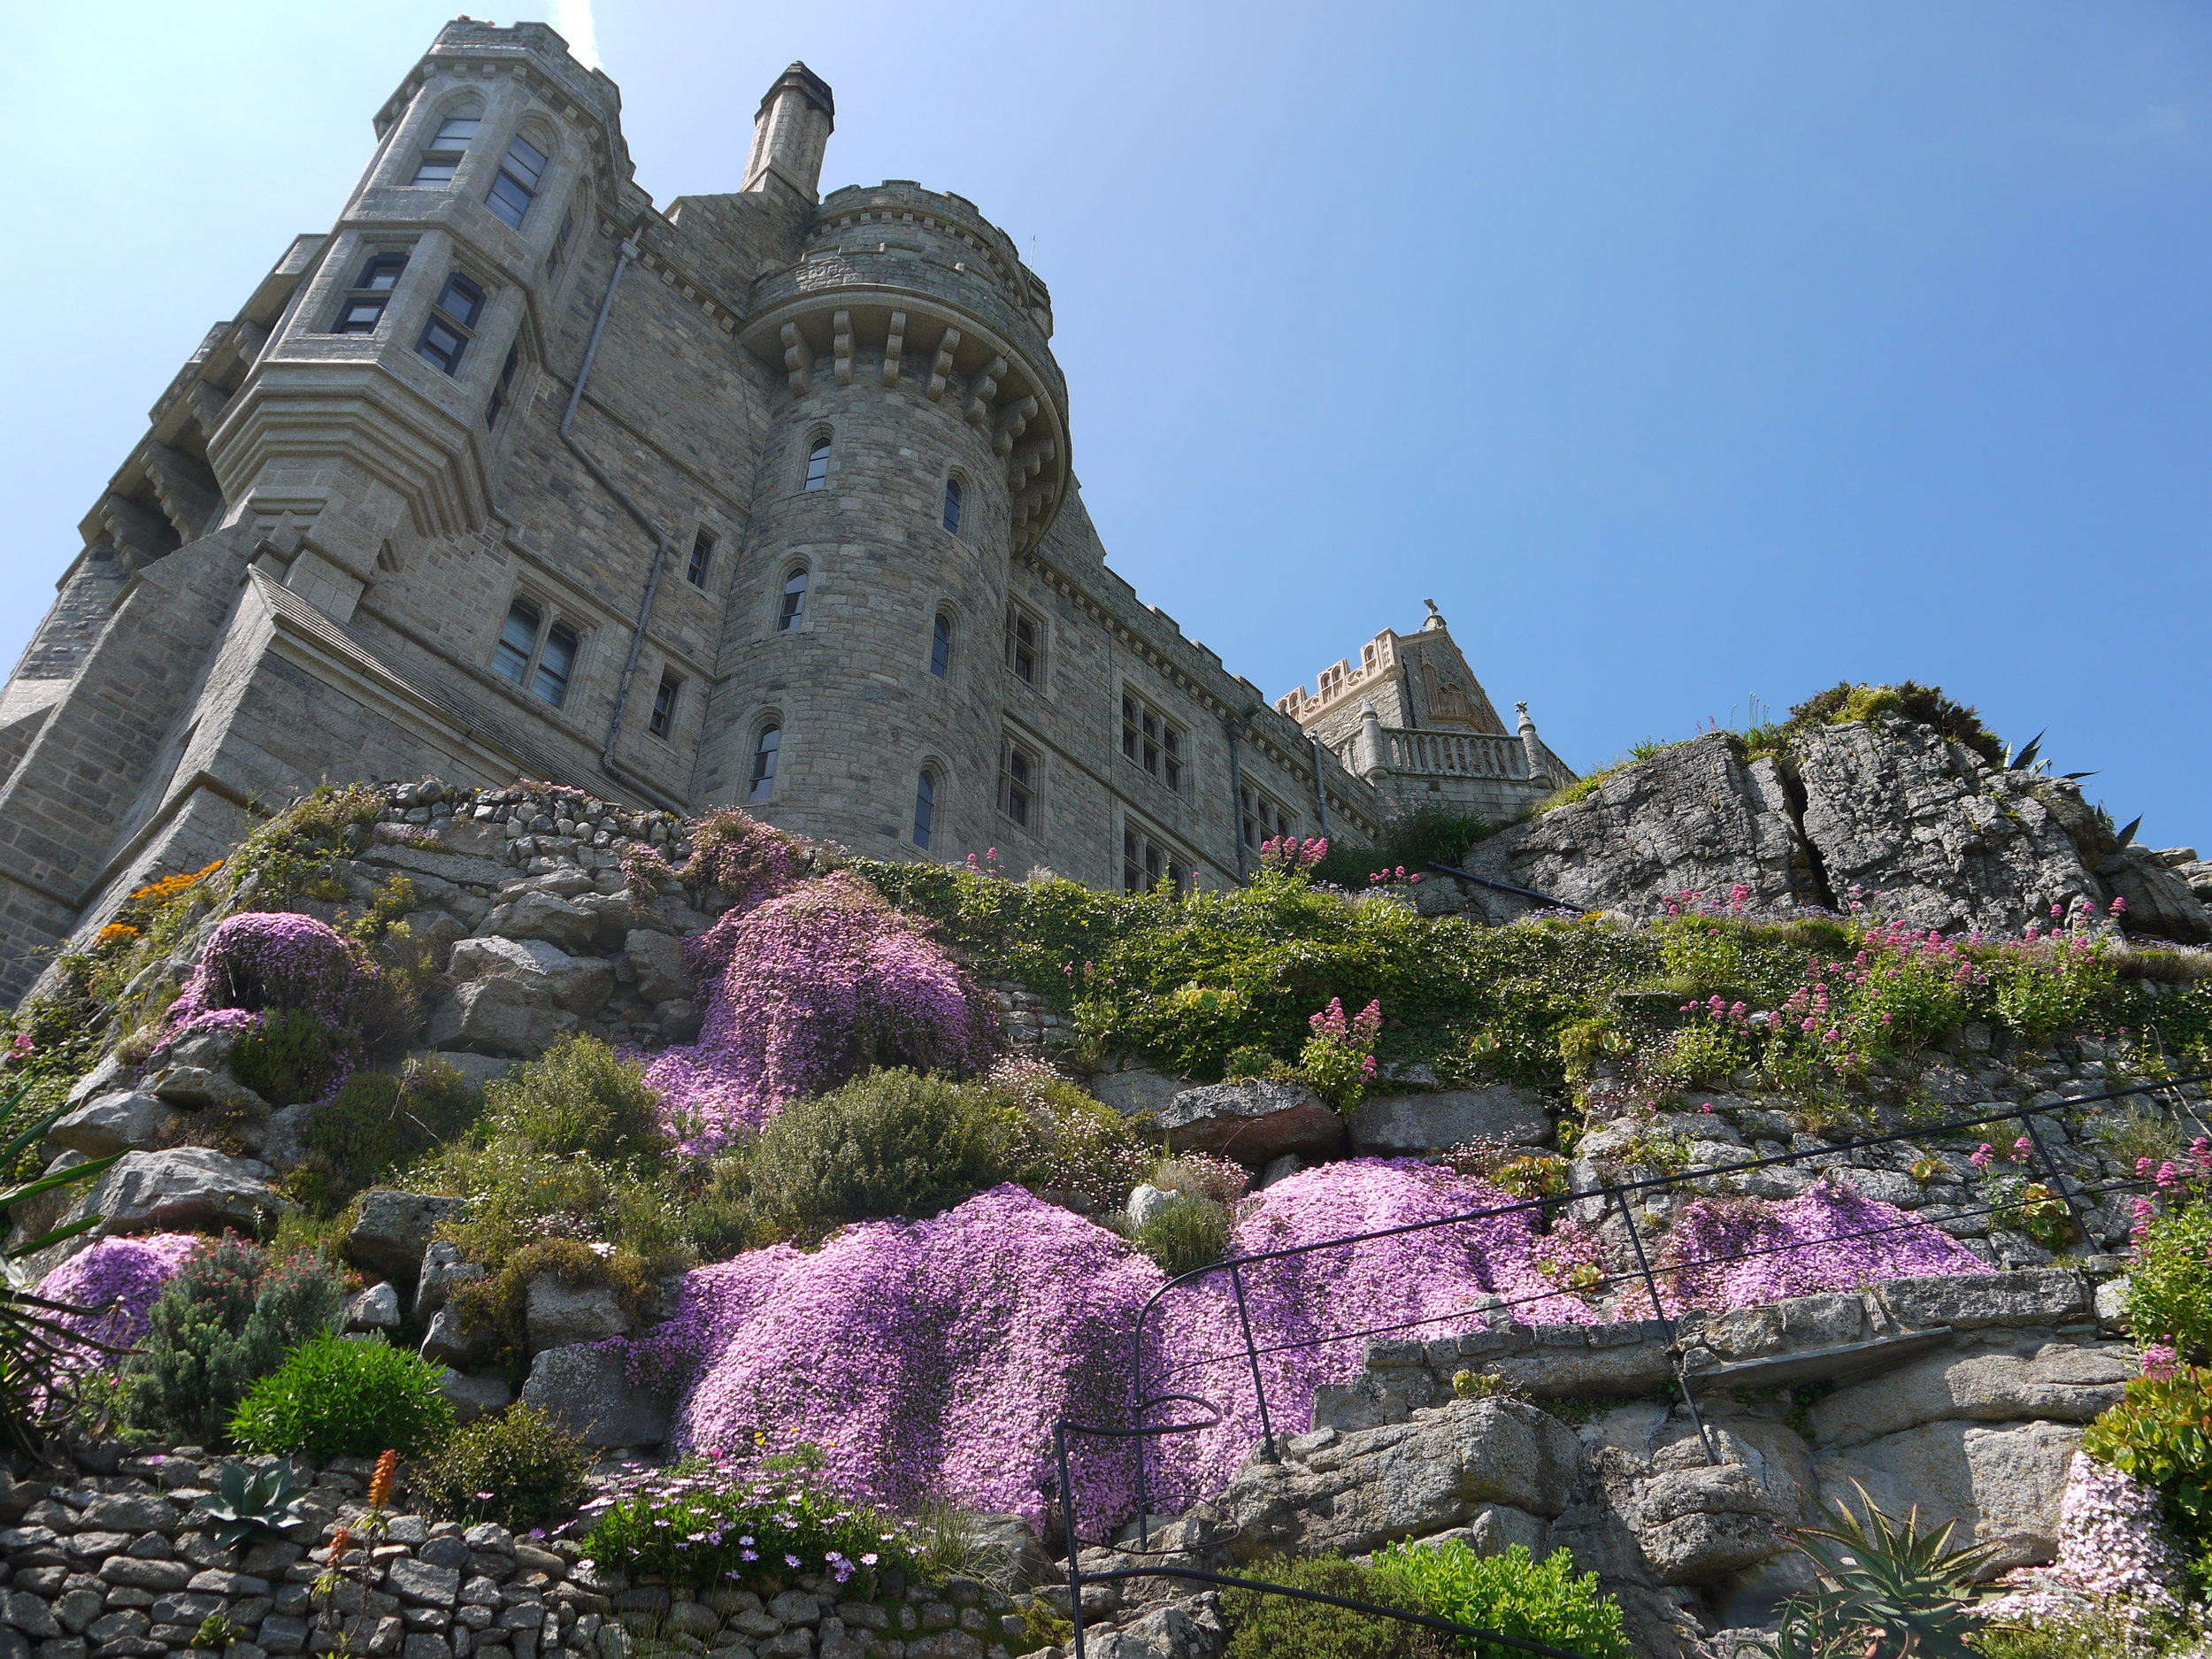 4. The Gardens at St Michael's Mount - As the summer starts to get into full swing the gardens at St Michael's Mount become open to the public and are spectacular to explore.The tropical weather means the island can host many rare species of flowers that would struggle to grow outside anywhere else in the UK!